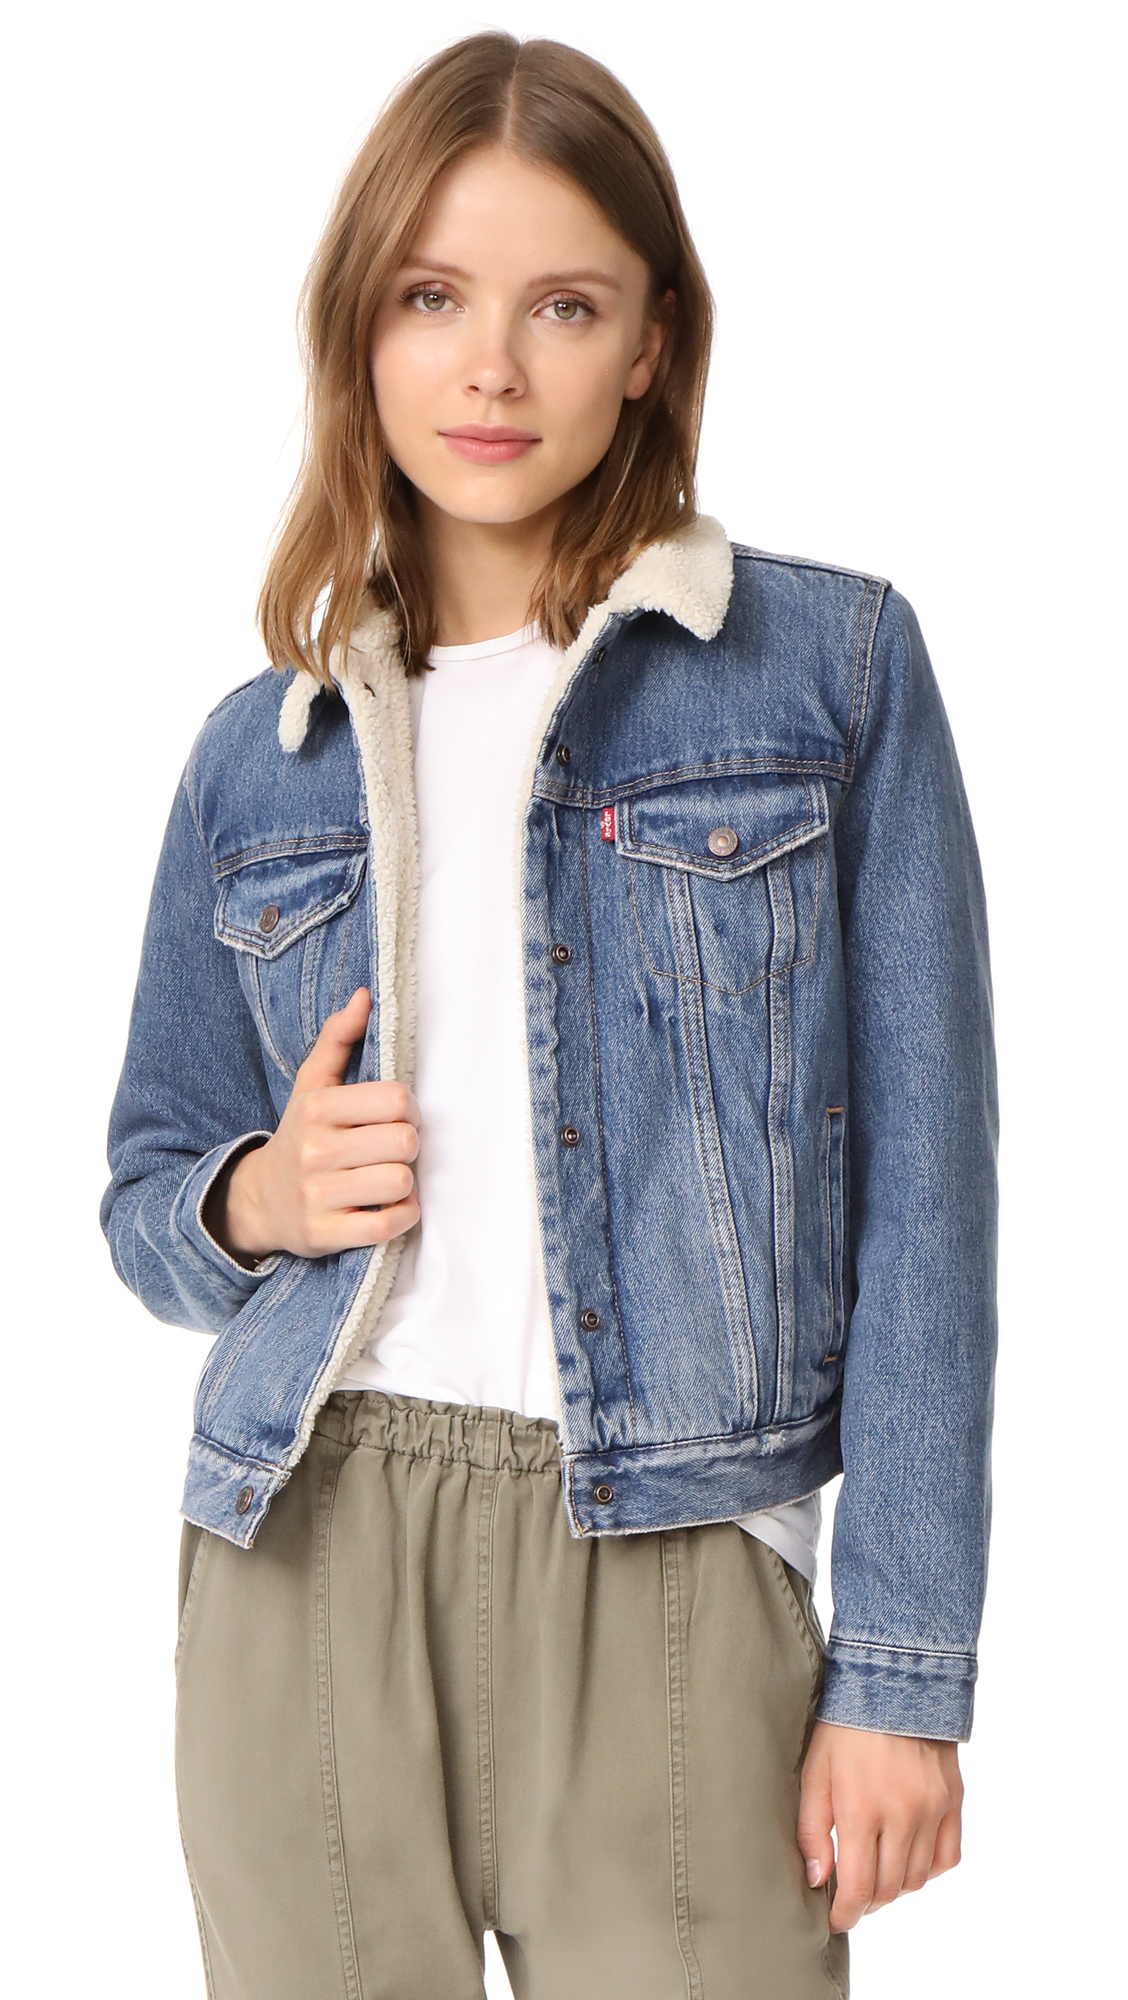 Levis Original Sherpa Trucker Jacket - Extremely Lovable